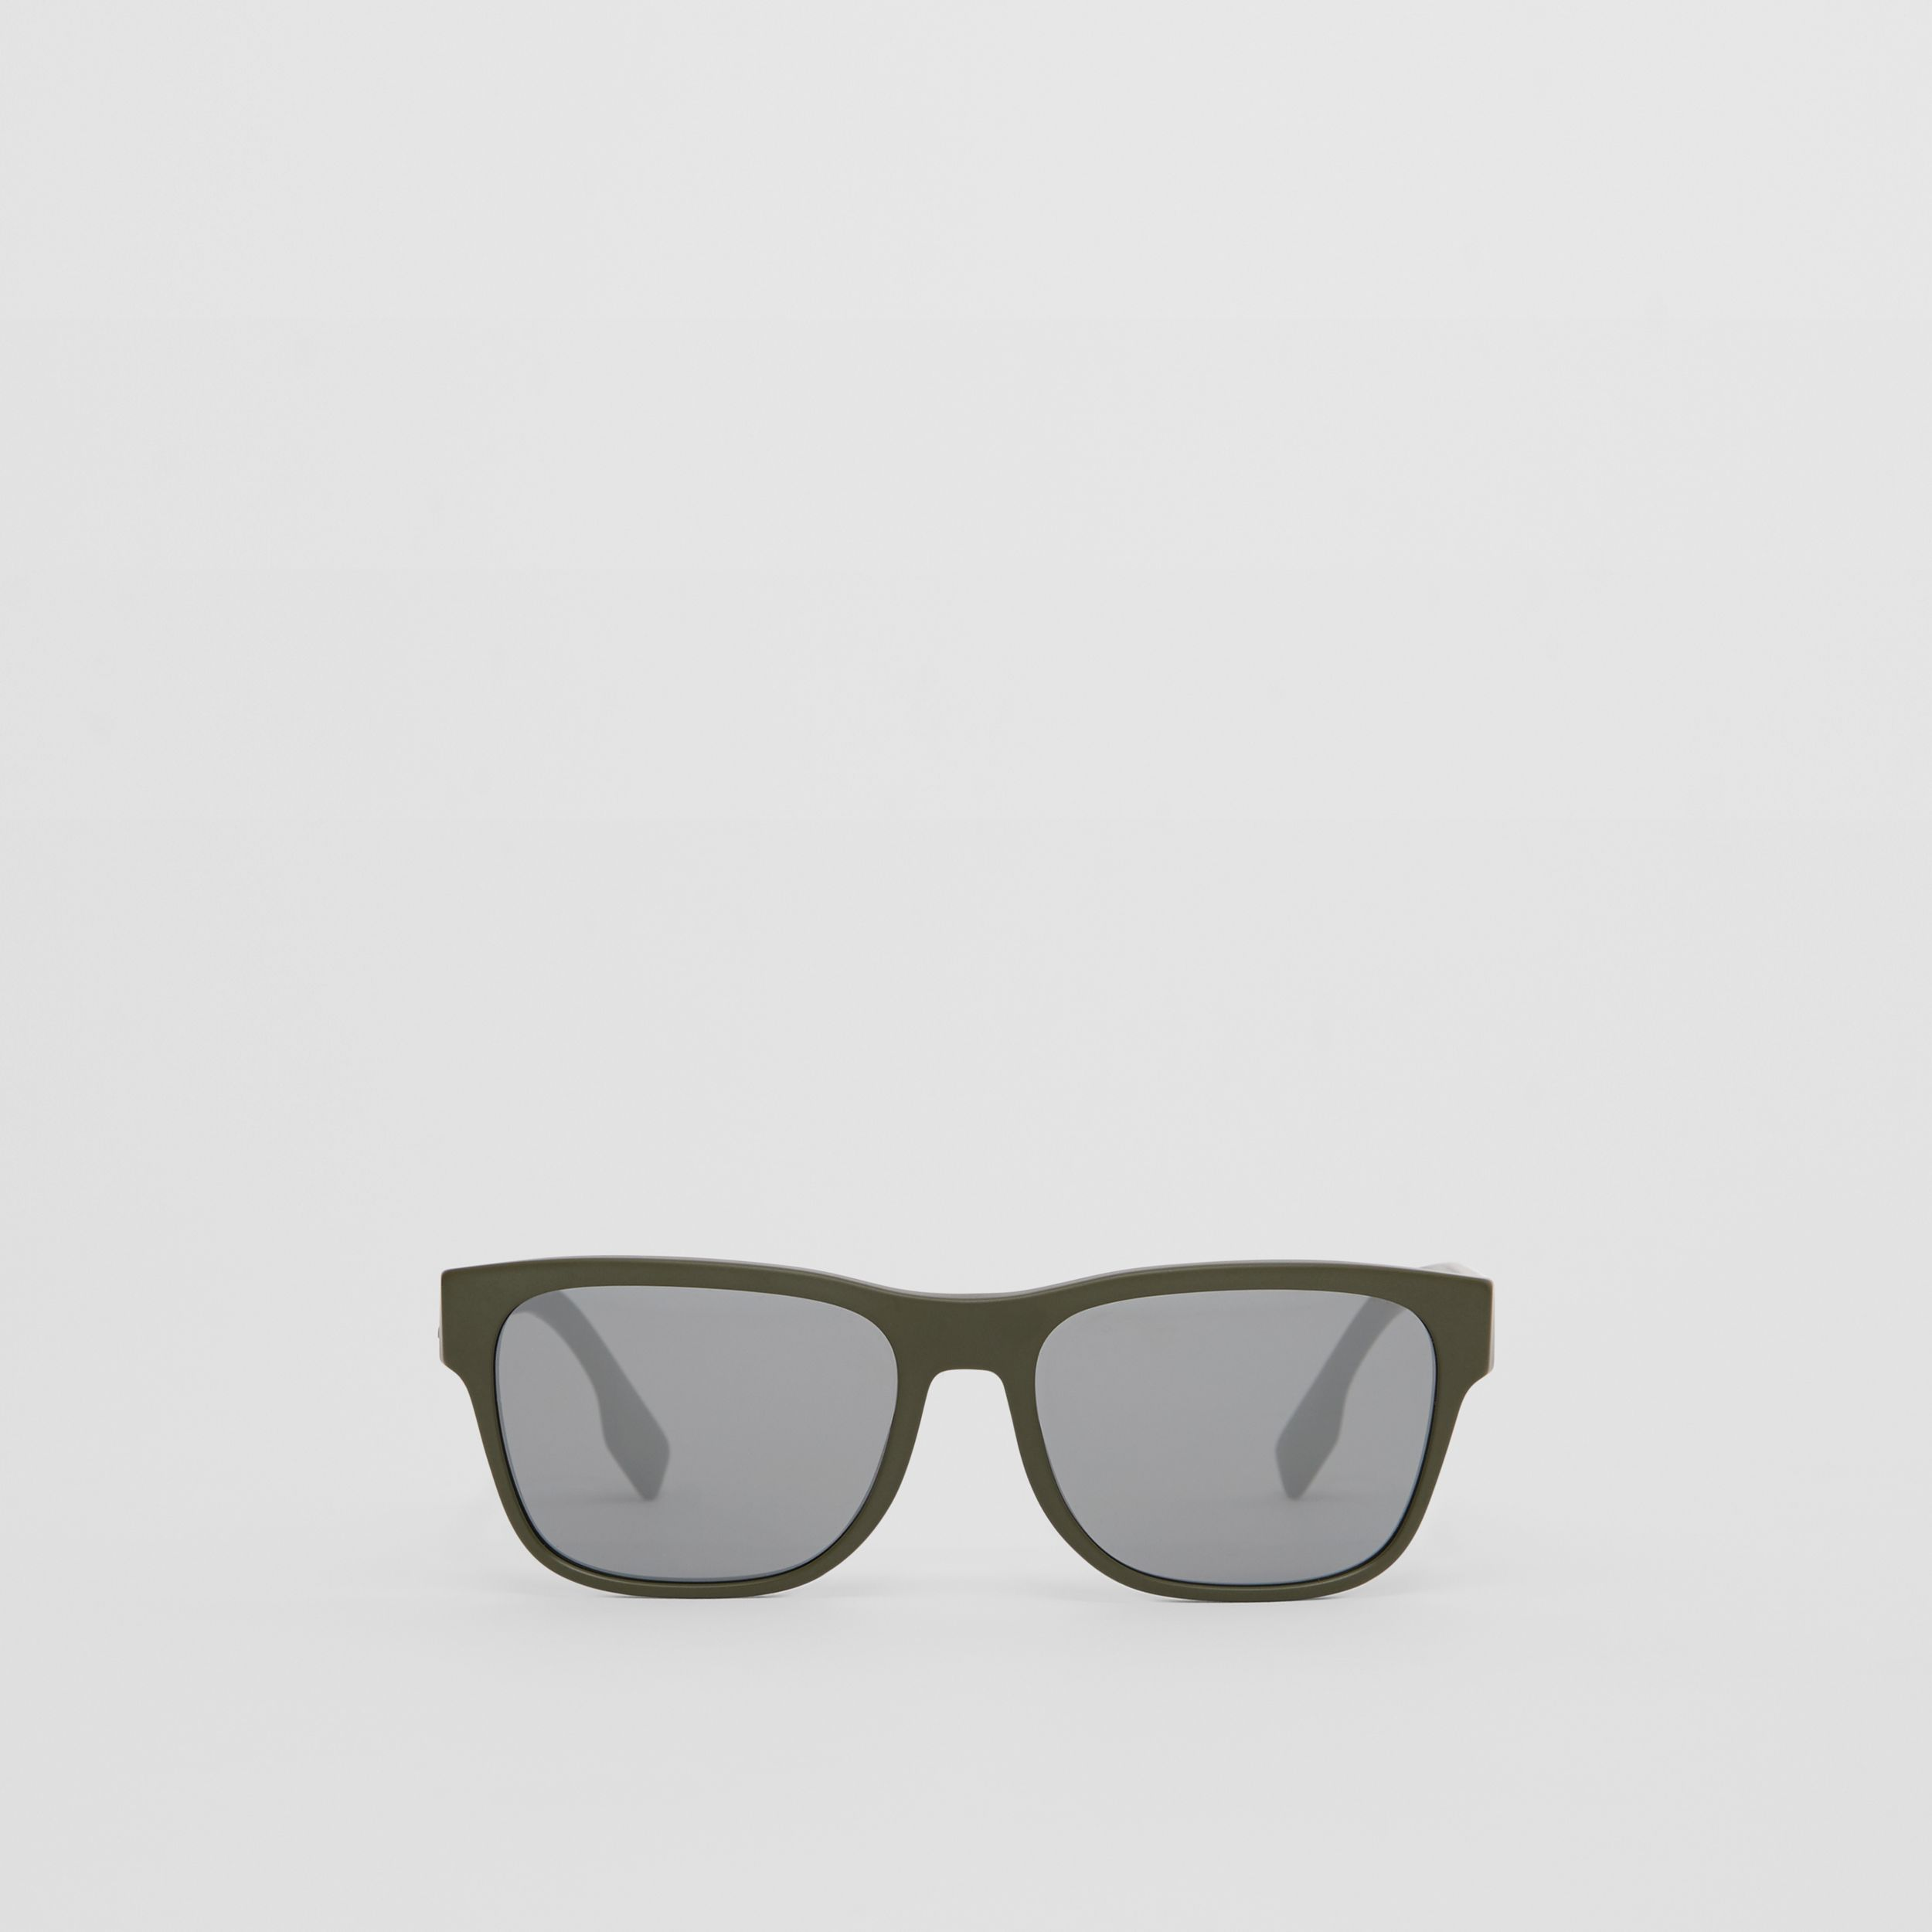 Logo Appliqué Square Frame Sunglasses in Military Green - Men | Burberry - 1